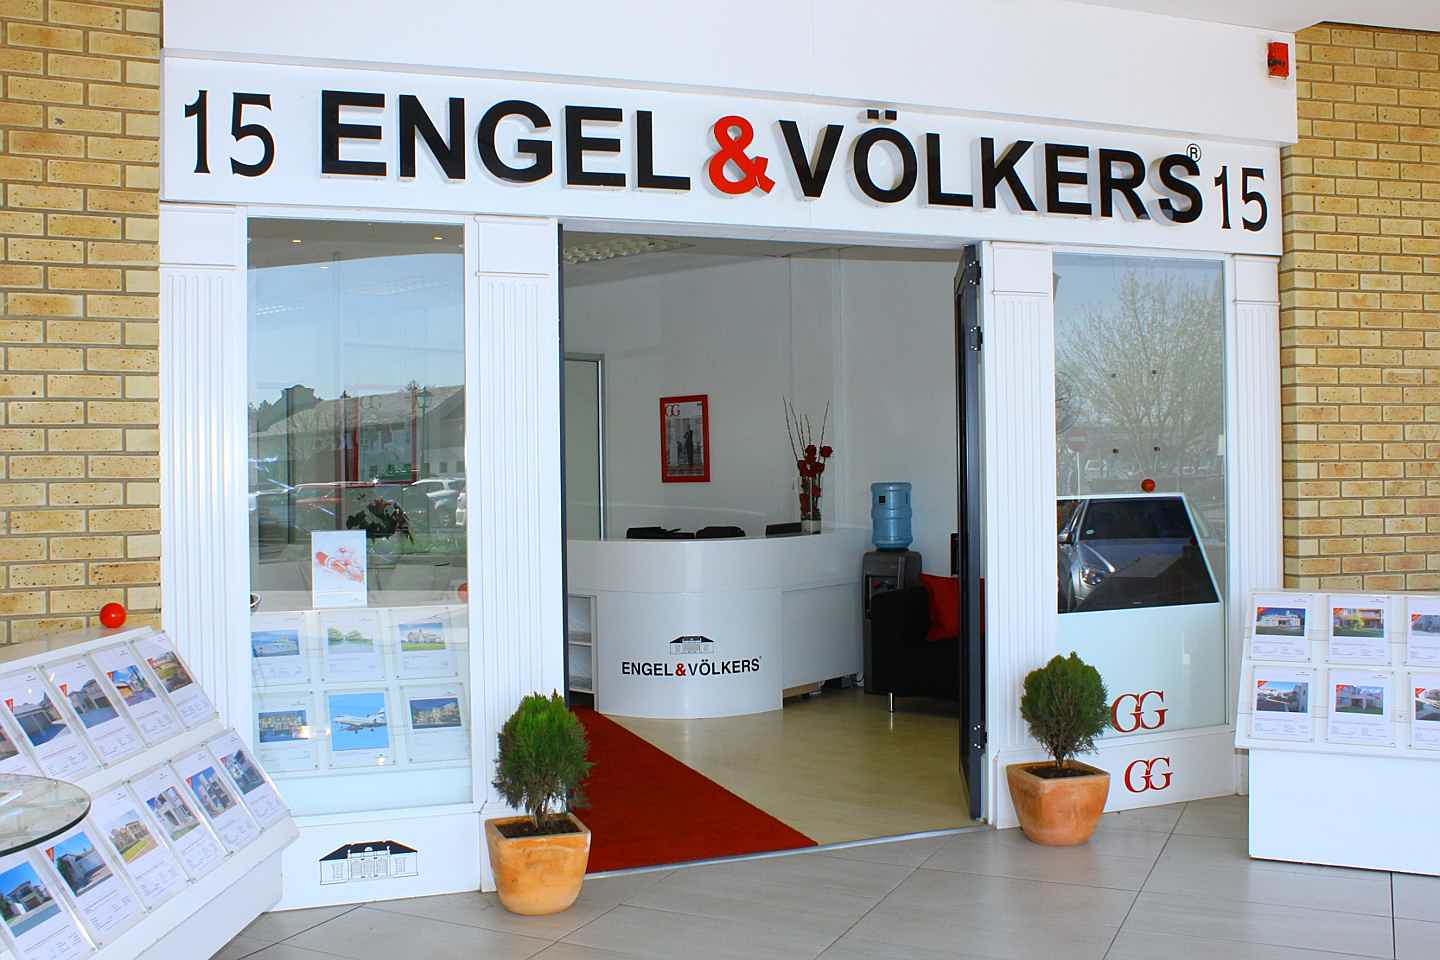 South Africa - Engel & Völkers Fourways | Broadacres Shop 1E, Needwood House, Broadacres Shopping Centre,Cedar Avenue, Fourways, 2055 Tel. +27(0)11 465 0410 Broadacres@engelvoelkers.com Suburbs Covered: North Riding | Olivedale | JHB North | Jukskei Park | Douglasdale | Norscot | Fourways | Magaliesig | Craigavon | Needwood | Maroeladal | Witkoppen | Cedar Lakes | Kengies | Broadares | Chartwell | Farmall | Dainfern